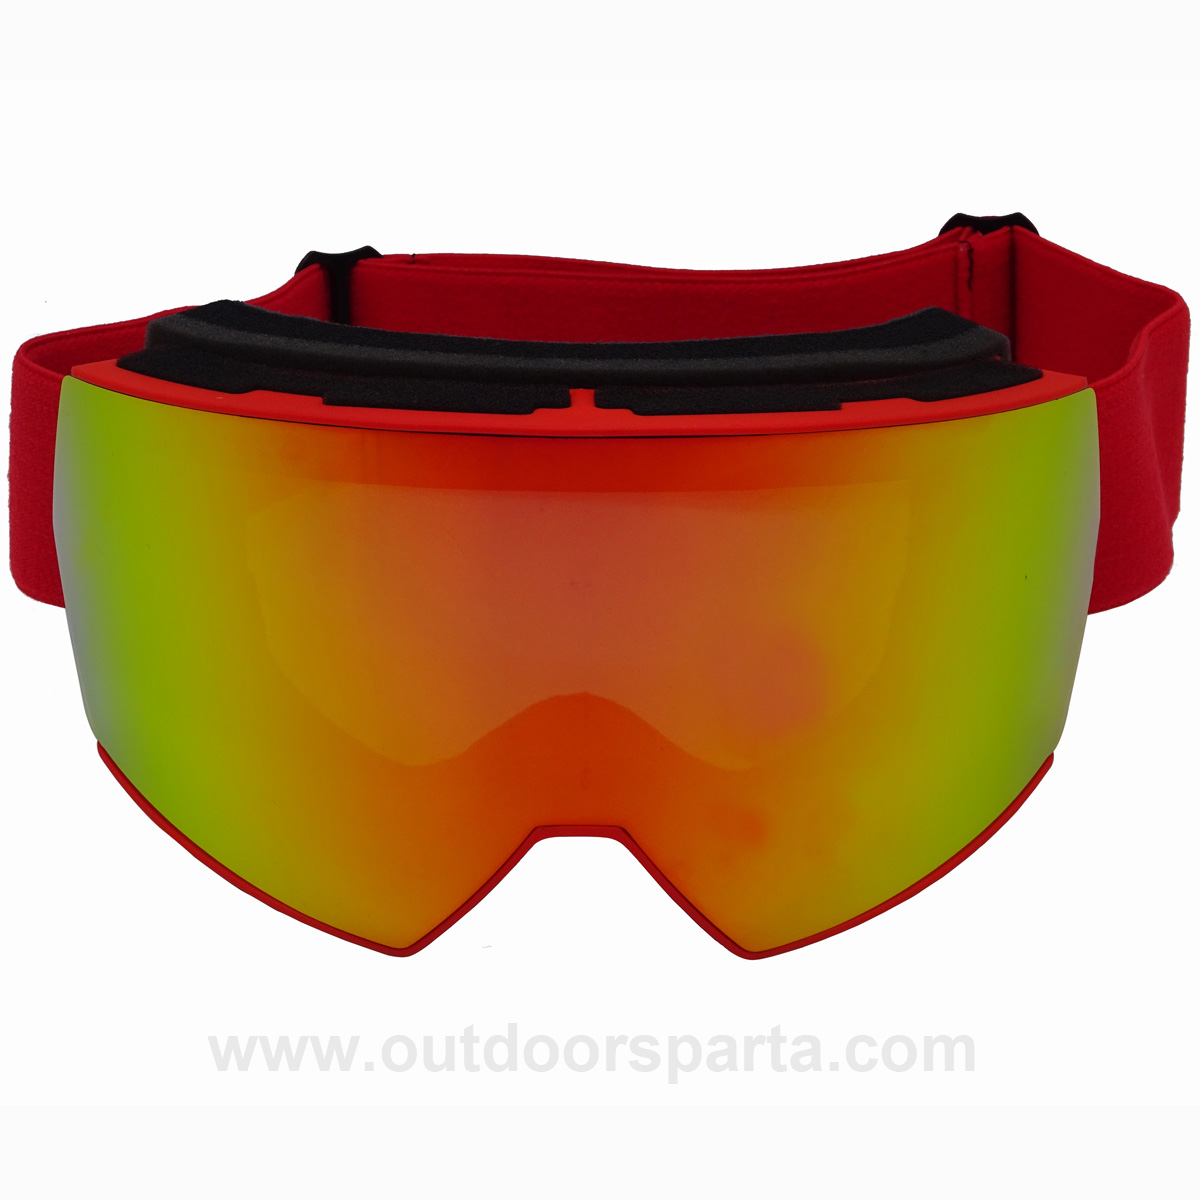 Adult snow goggles (SNOW-038)